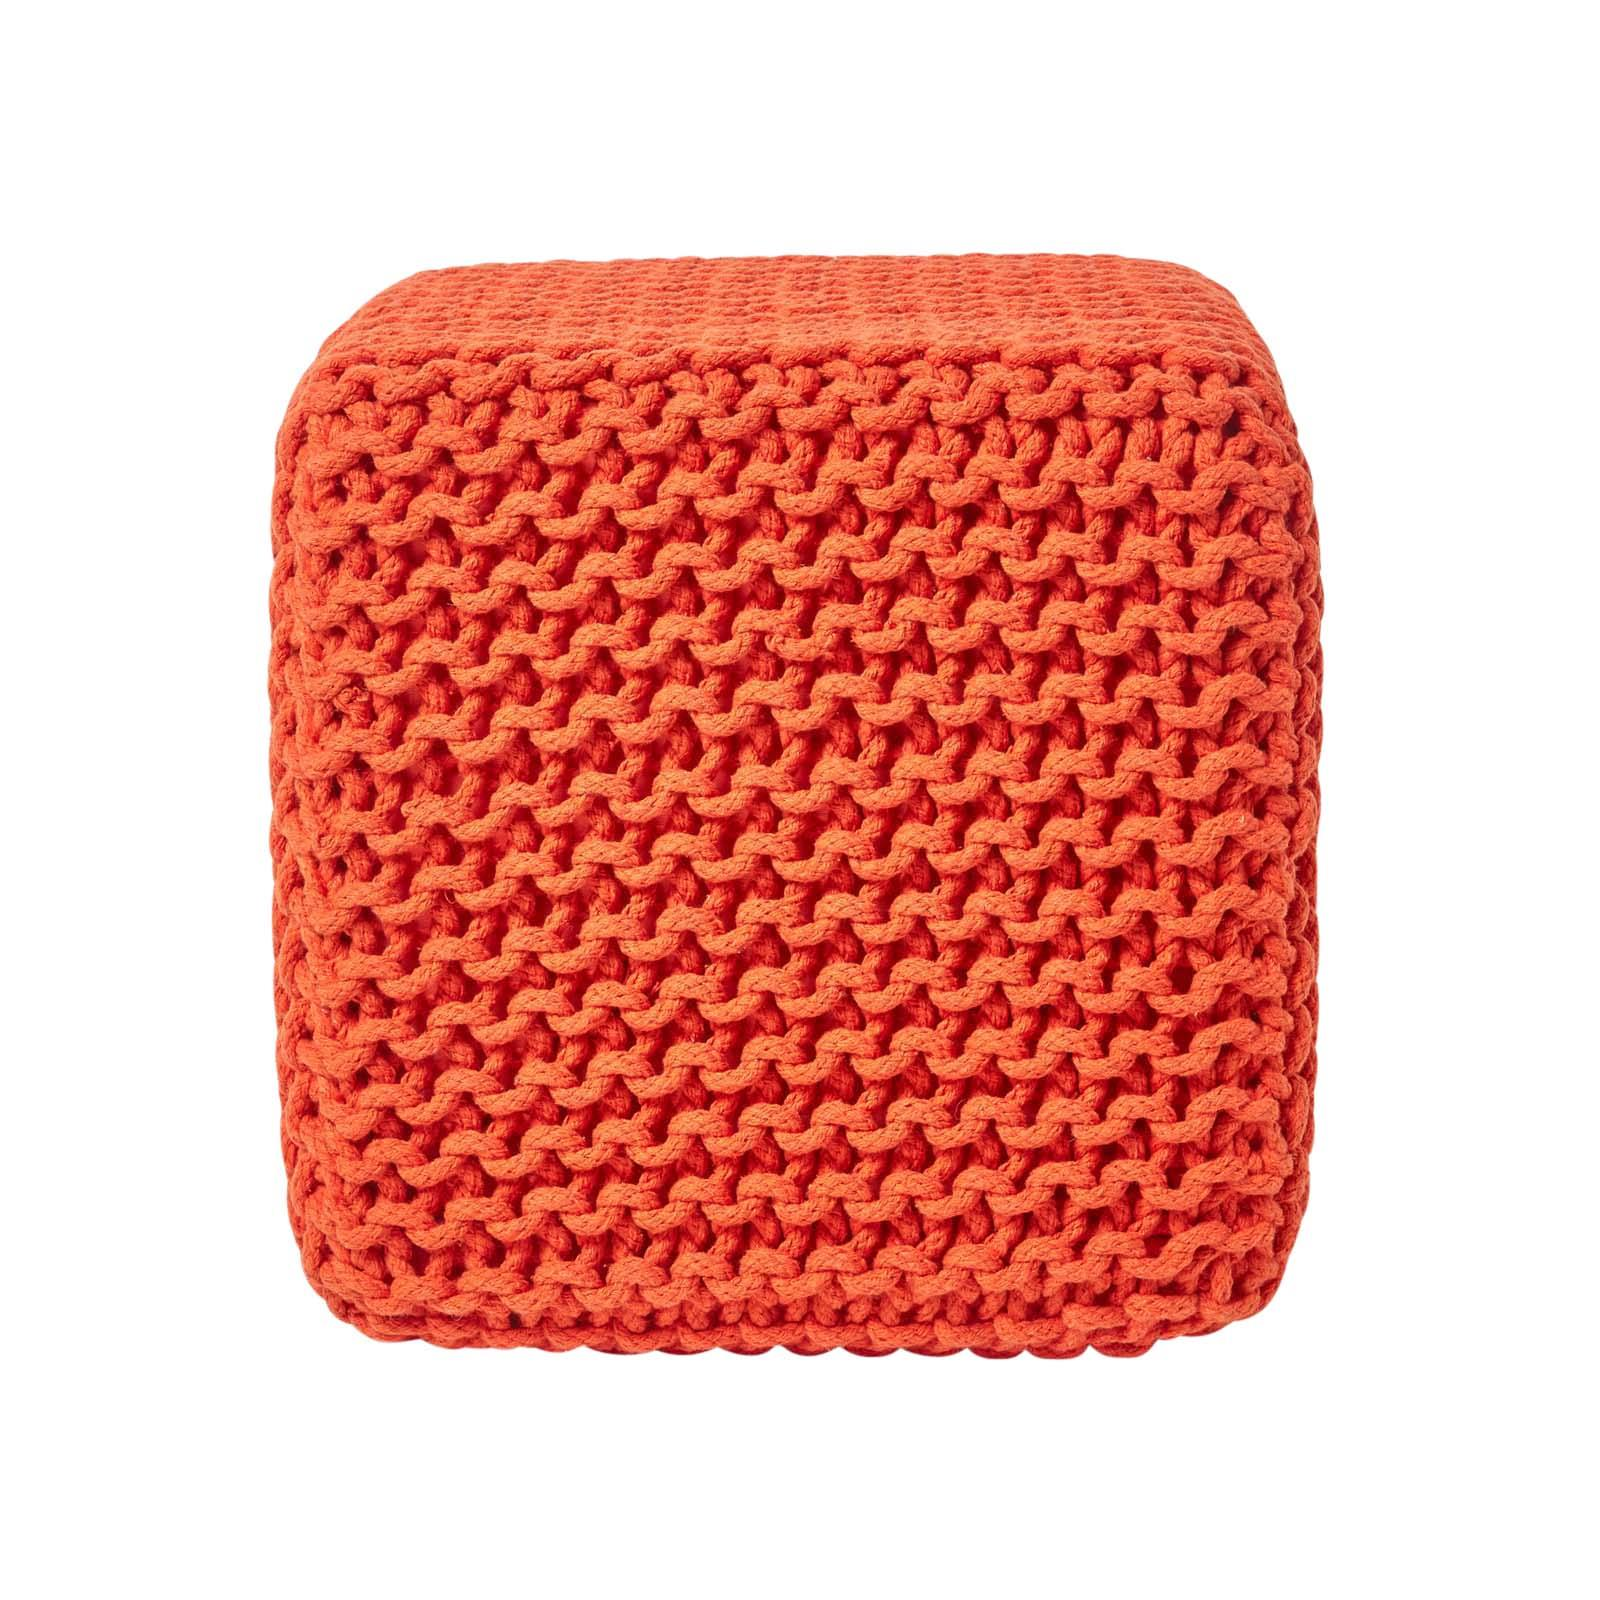 Hand-Knitted-100-Cotton-Pouffes-Round-Sphere-Or-Cube-Square-Chunky-Footstools thumbnail 116